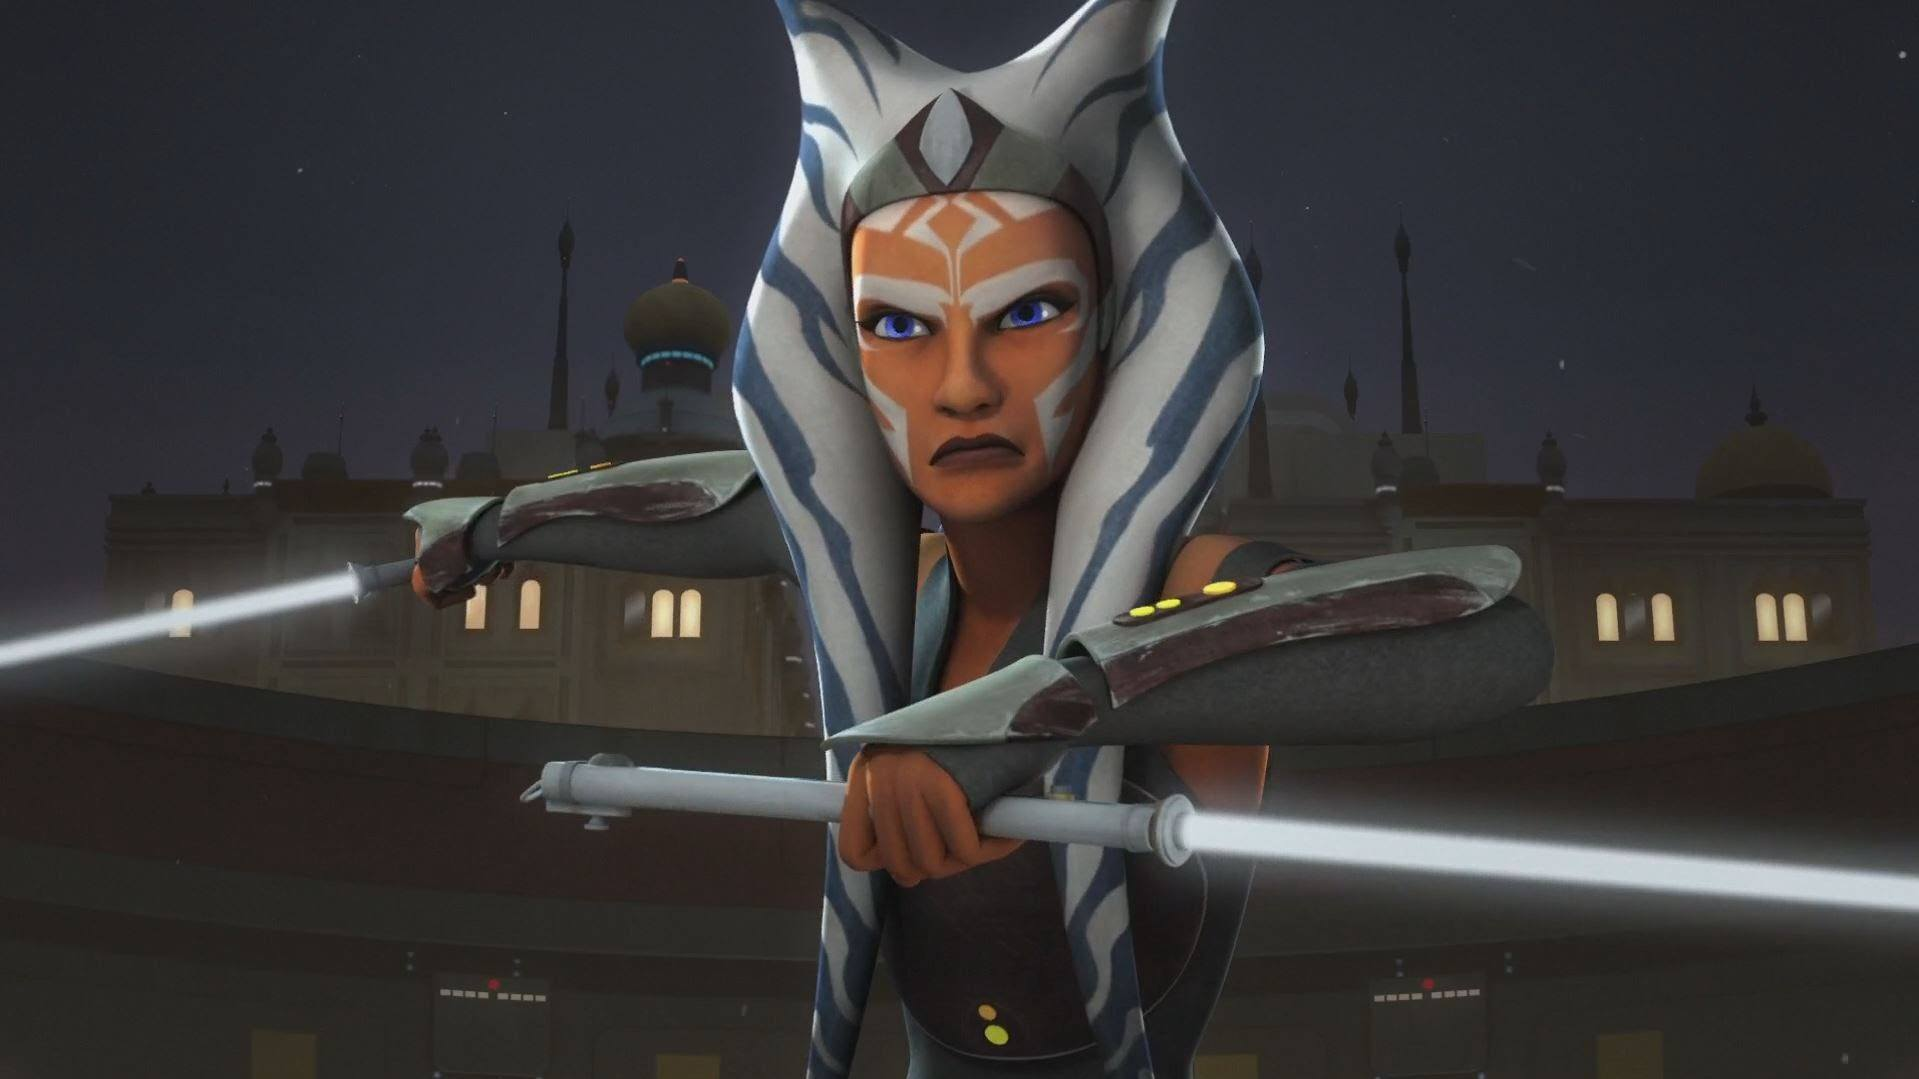 Ahsoka Tano in Star Wars Rebels